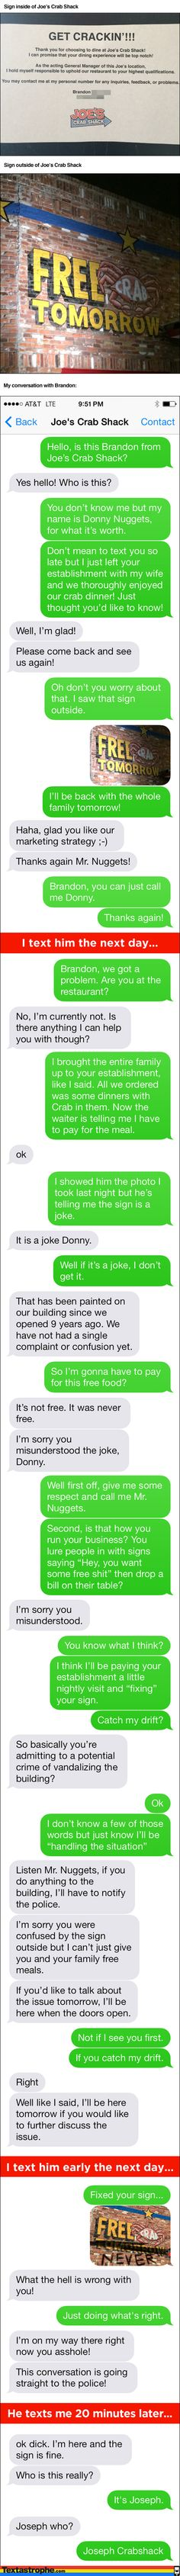 80 Best Text Pranks images in 2015 | Funny, Funny texts, Hilarious